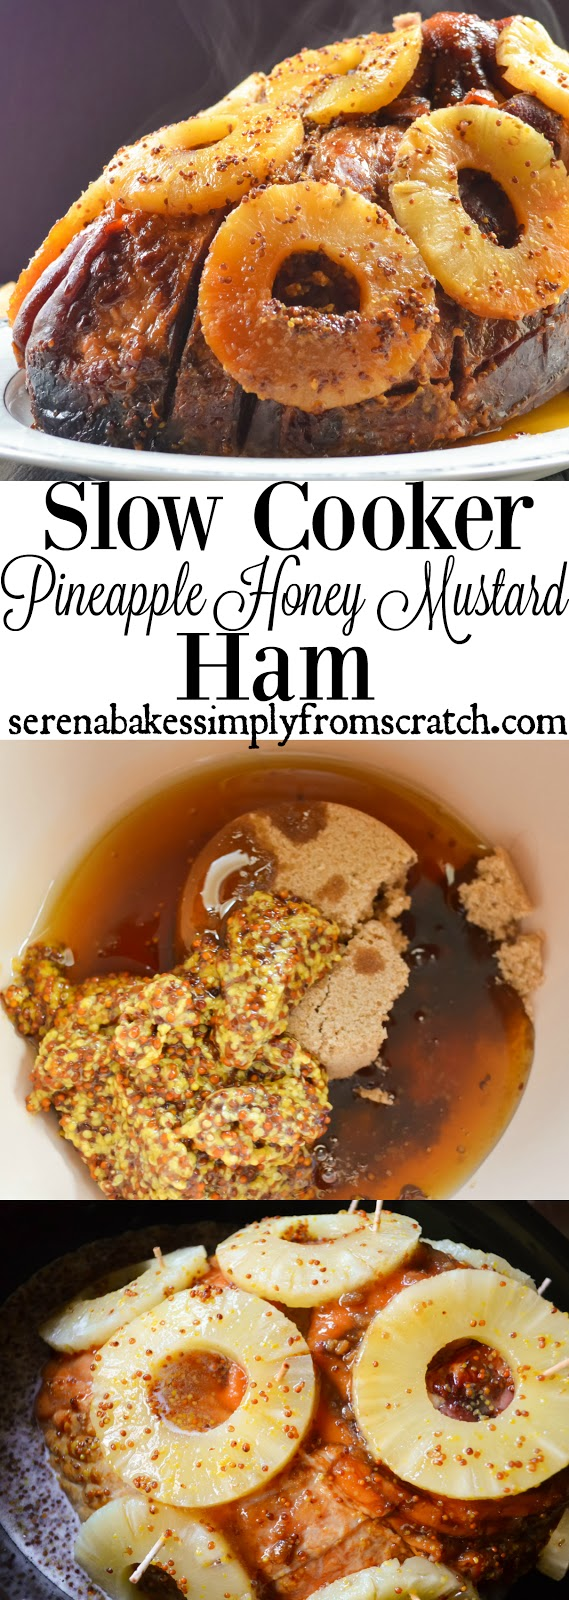 Slow Cooker Pineapple Honey Mustard Baked Ham. Easy to make and perfect for the Holidays!